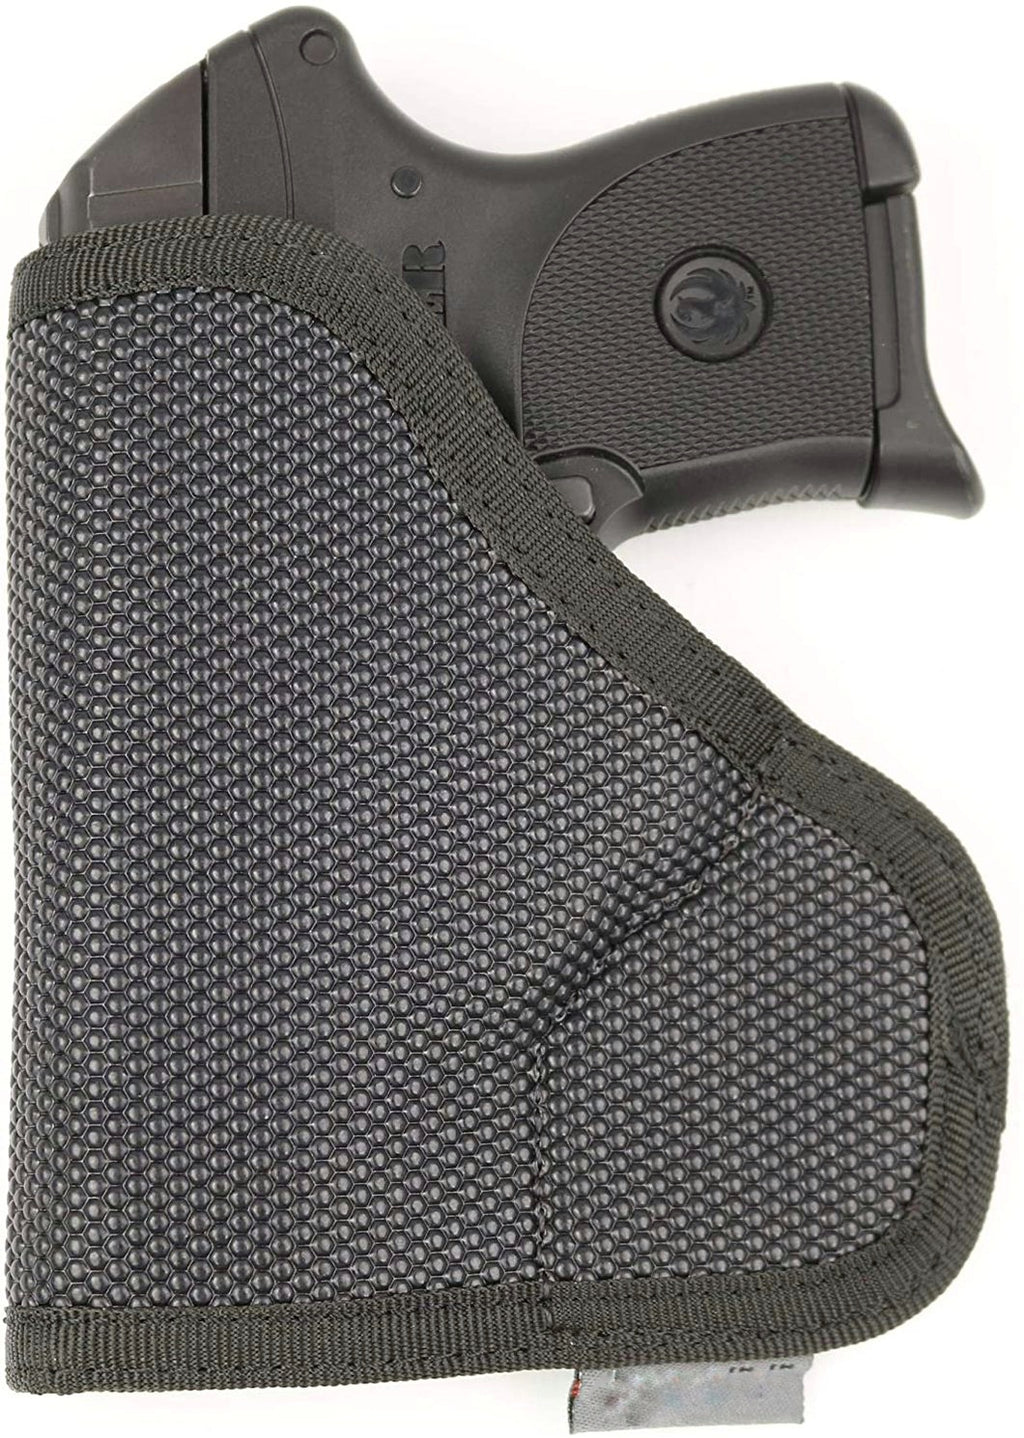 10th Anniversary Sale: 50% OFF And Buy 2 Save $5🔥Pocket Holster For Concealed Carry - Subcompact & Micro